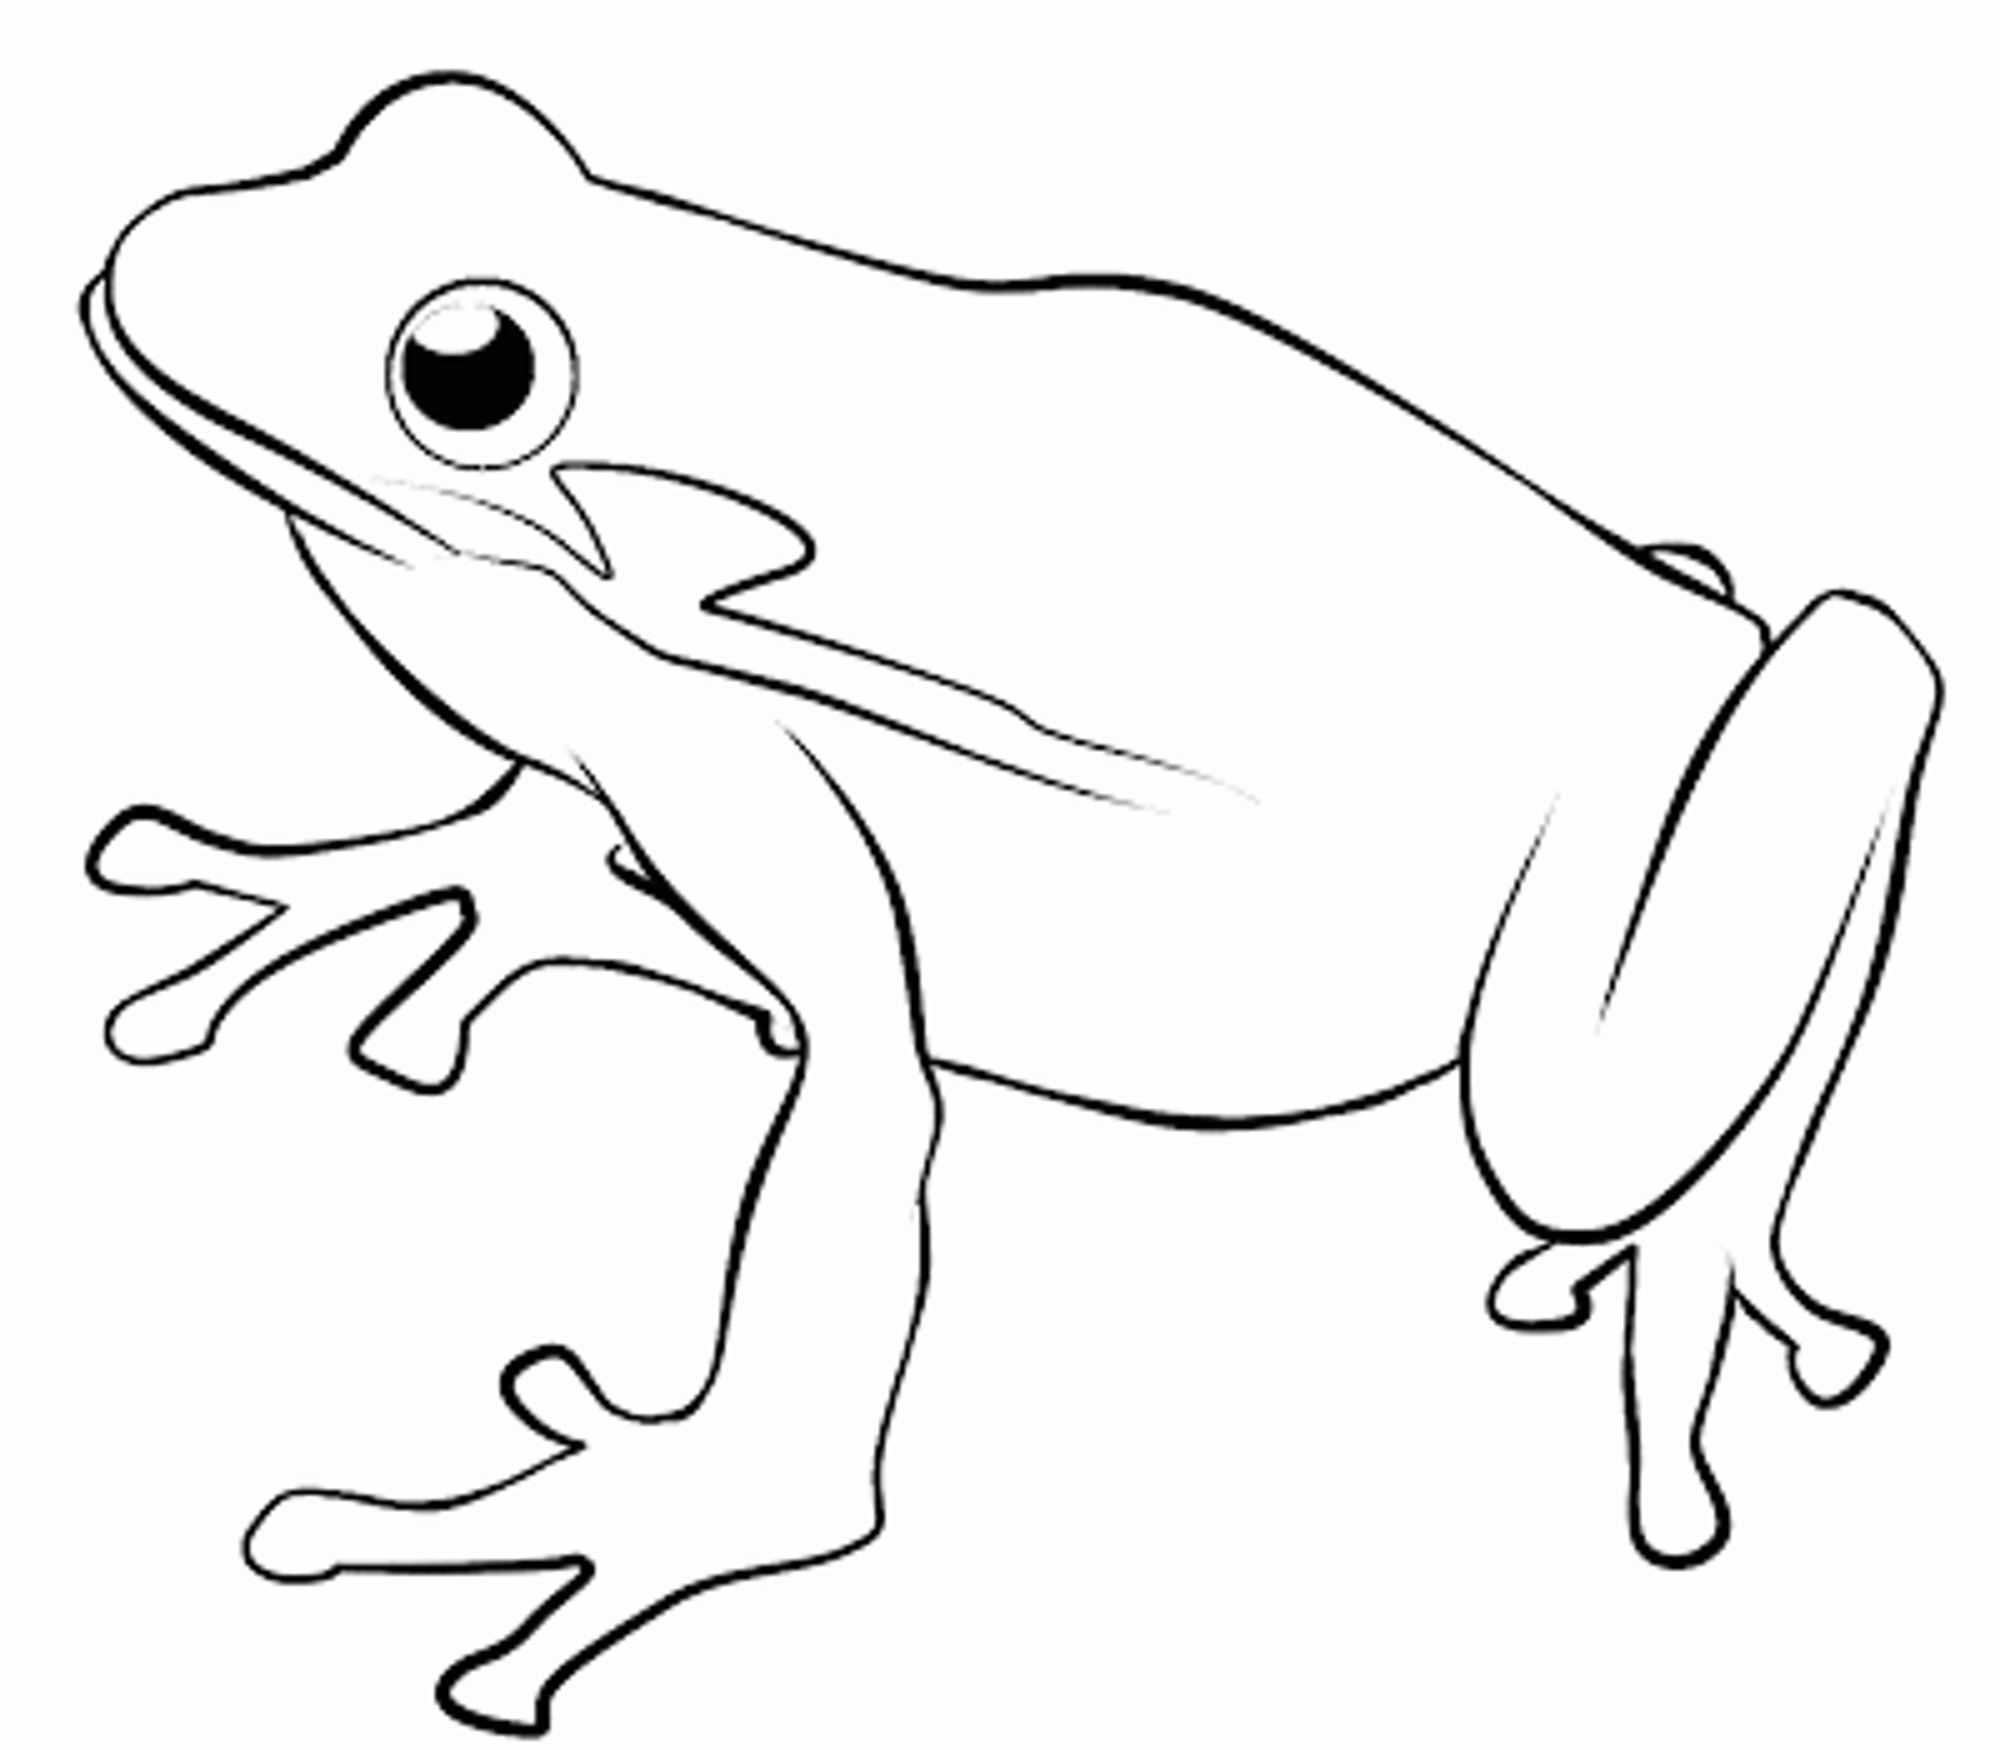 frog coloring pages to print printable frog color sheets activity shelter print coloring frog to pages